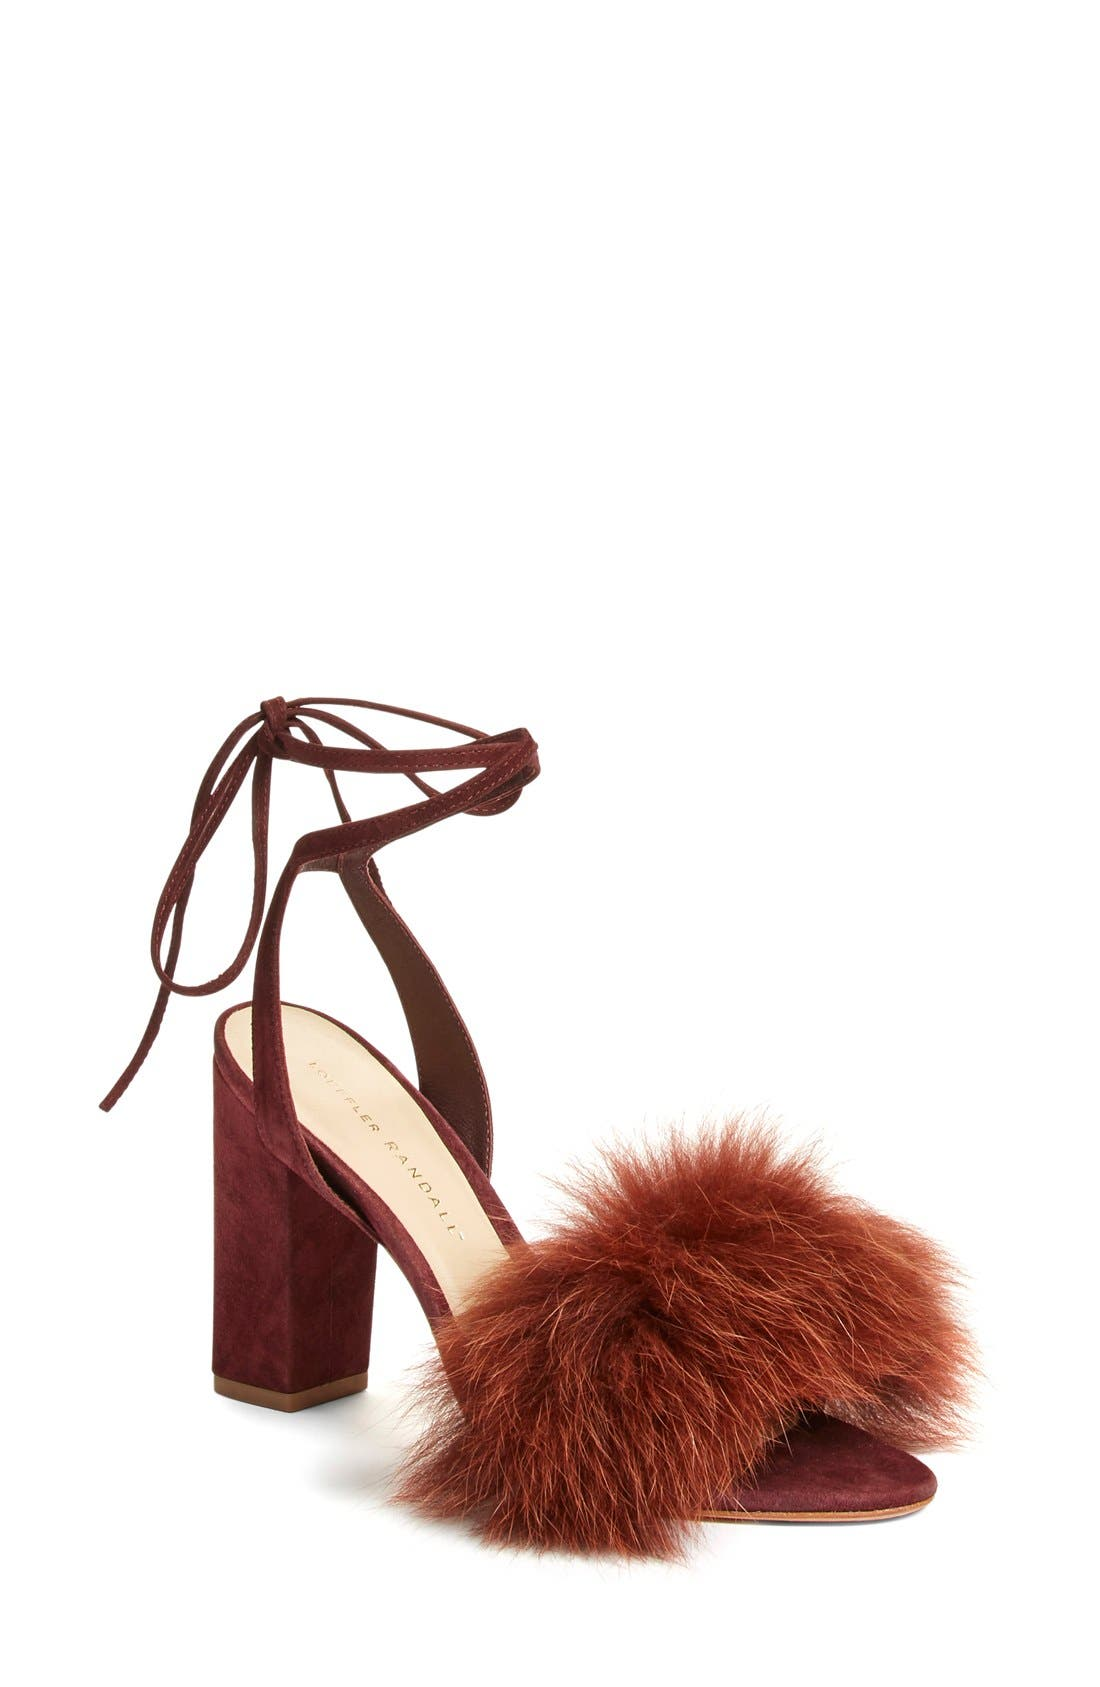 Main Image - Loeffler Randall 'Nicolette' Genuine Fox Fur Trim Sandal (Women)